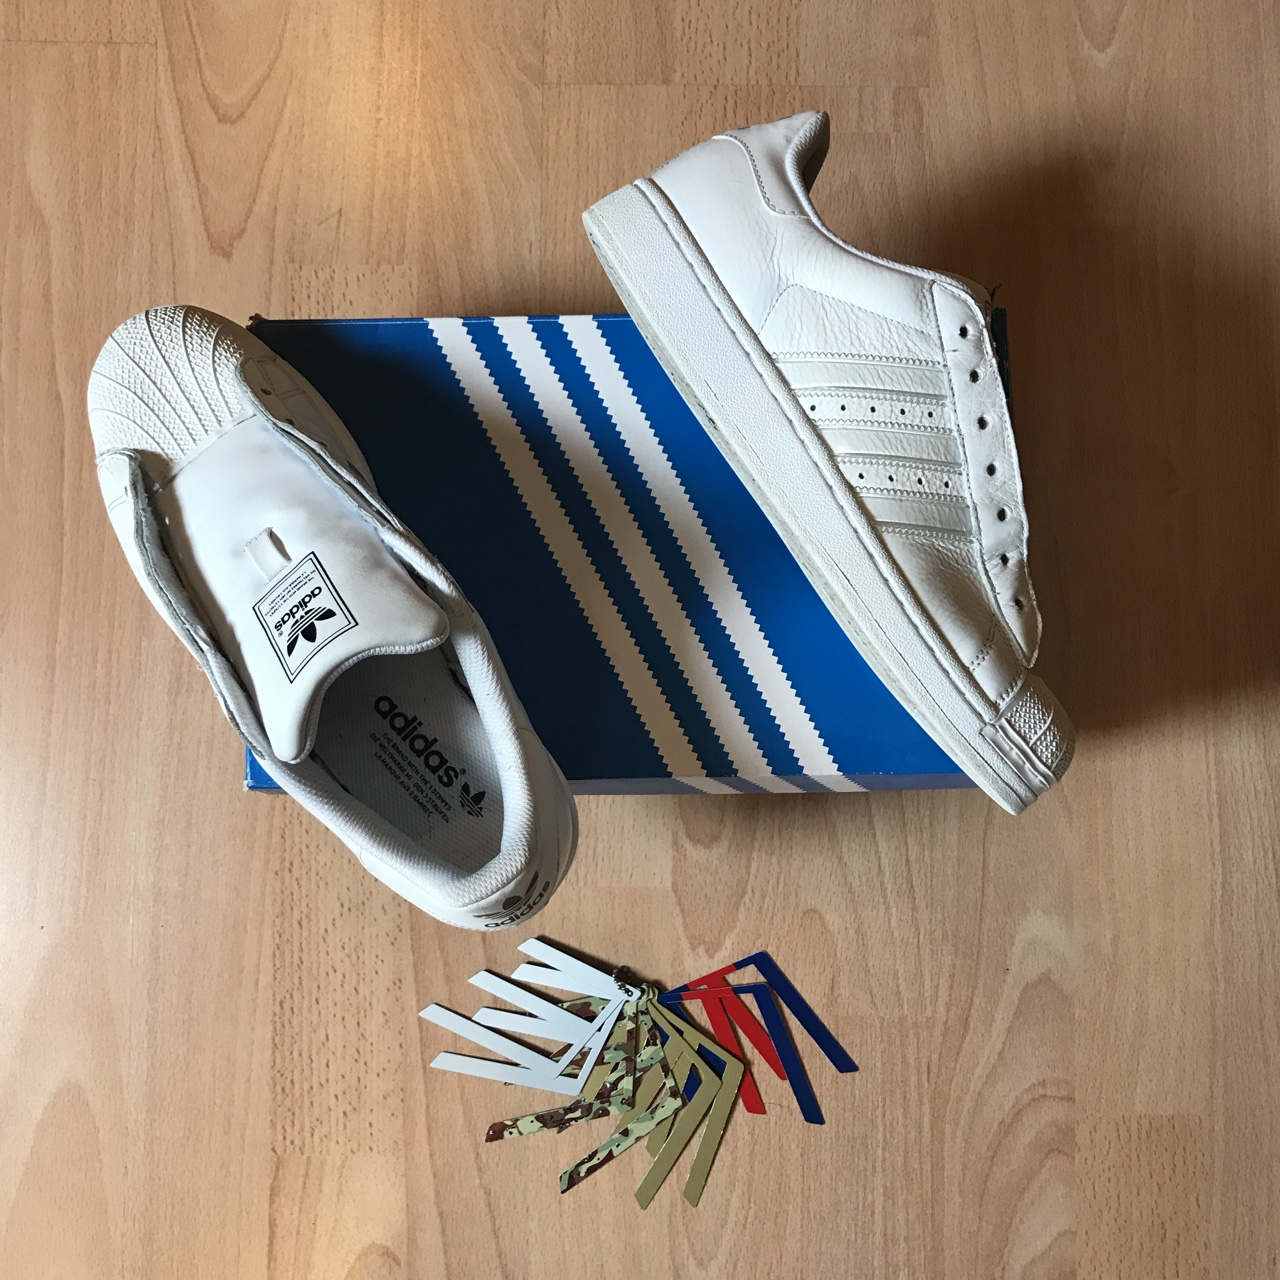 CHANGEABLE STRIPES! Adidas superstar 2